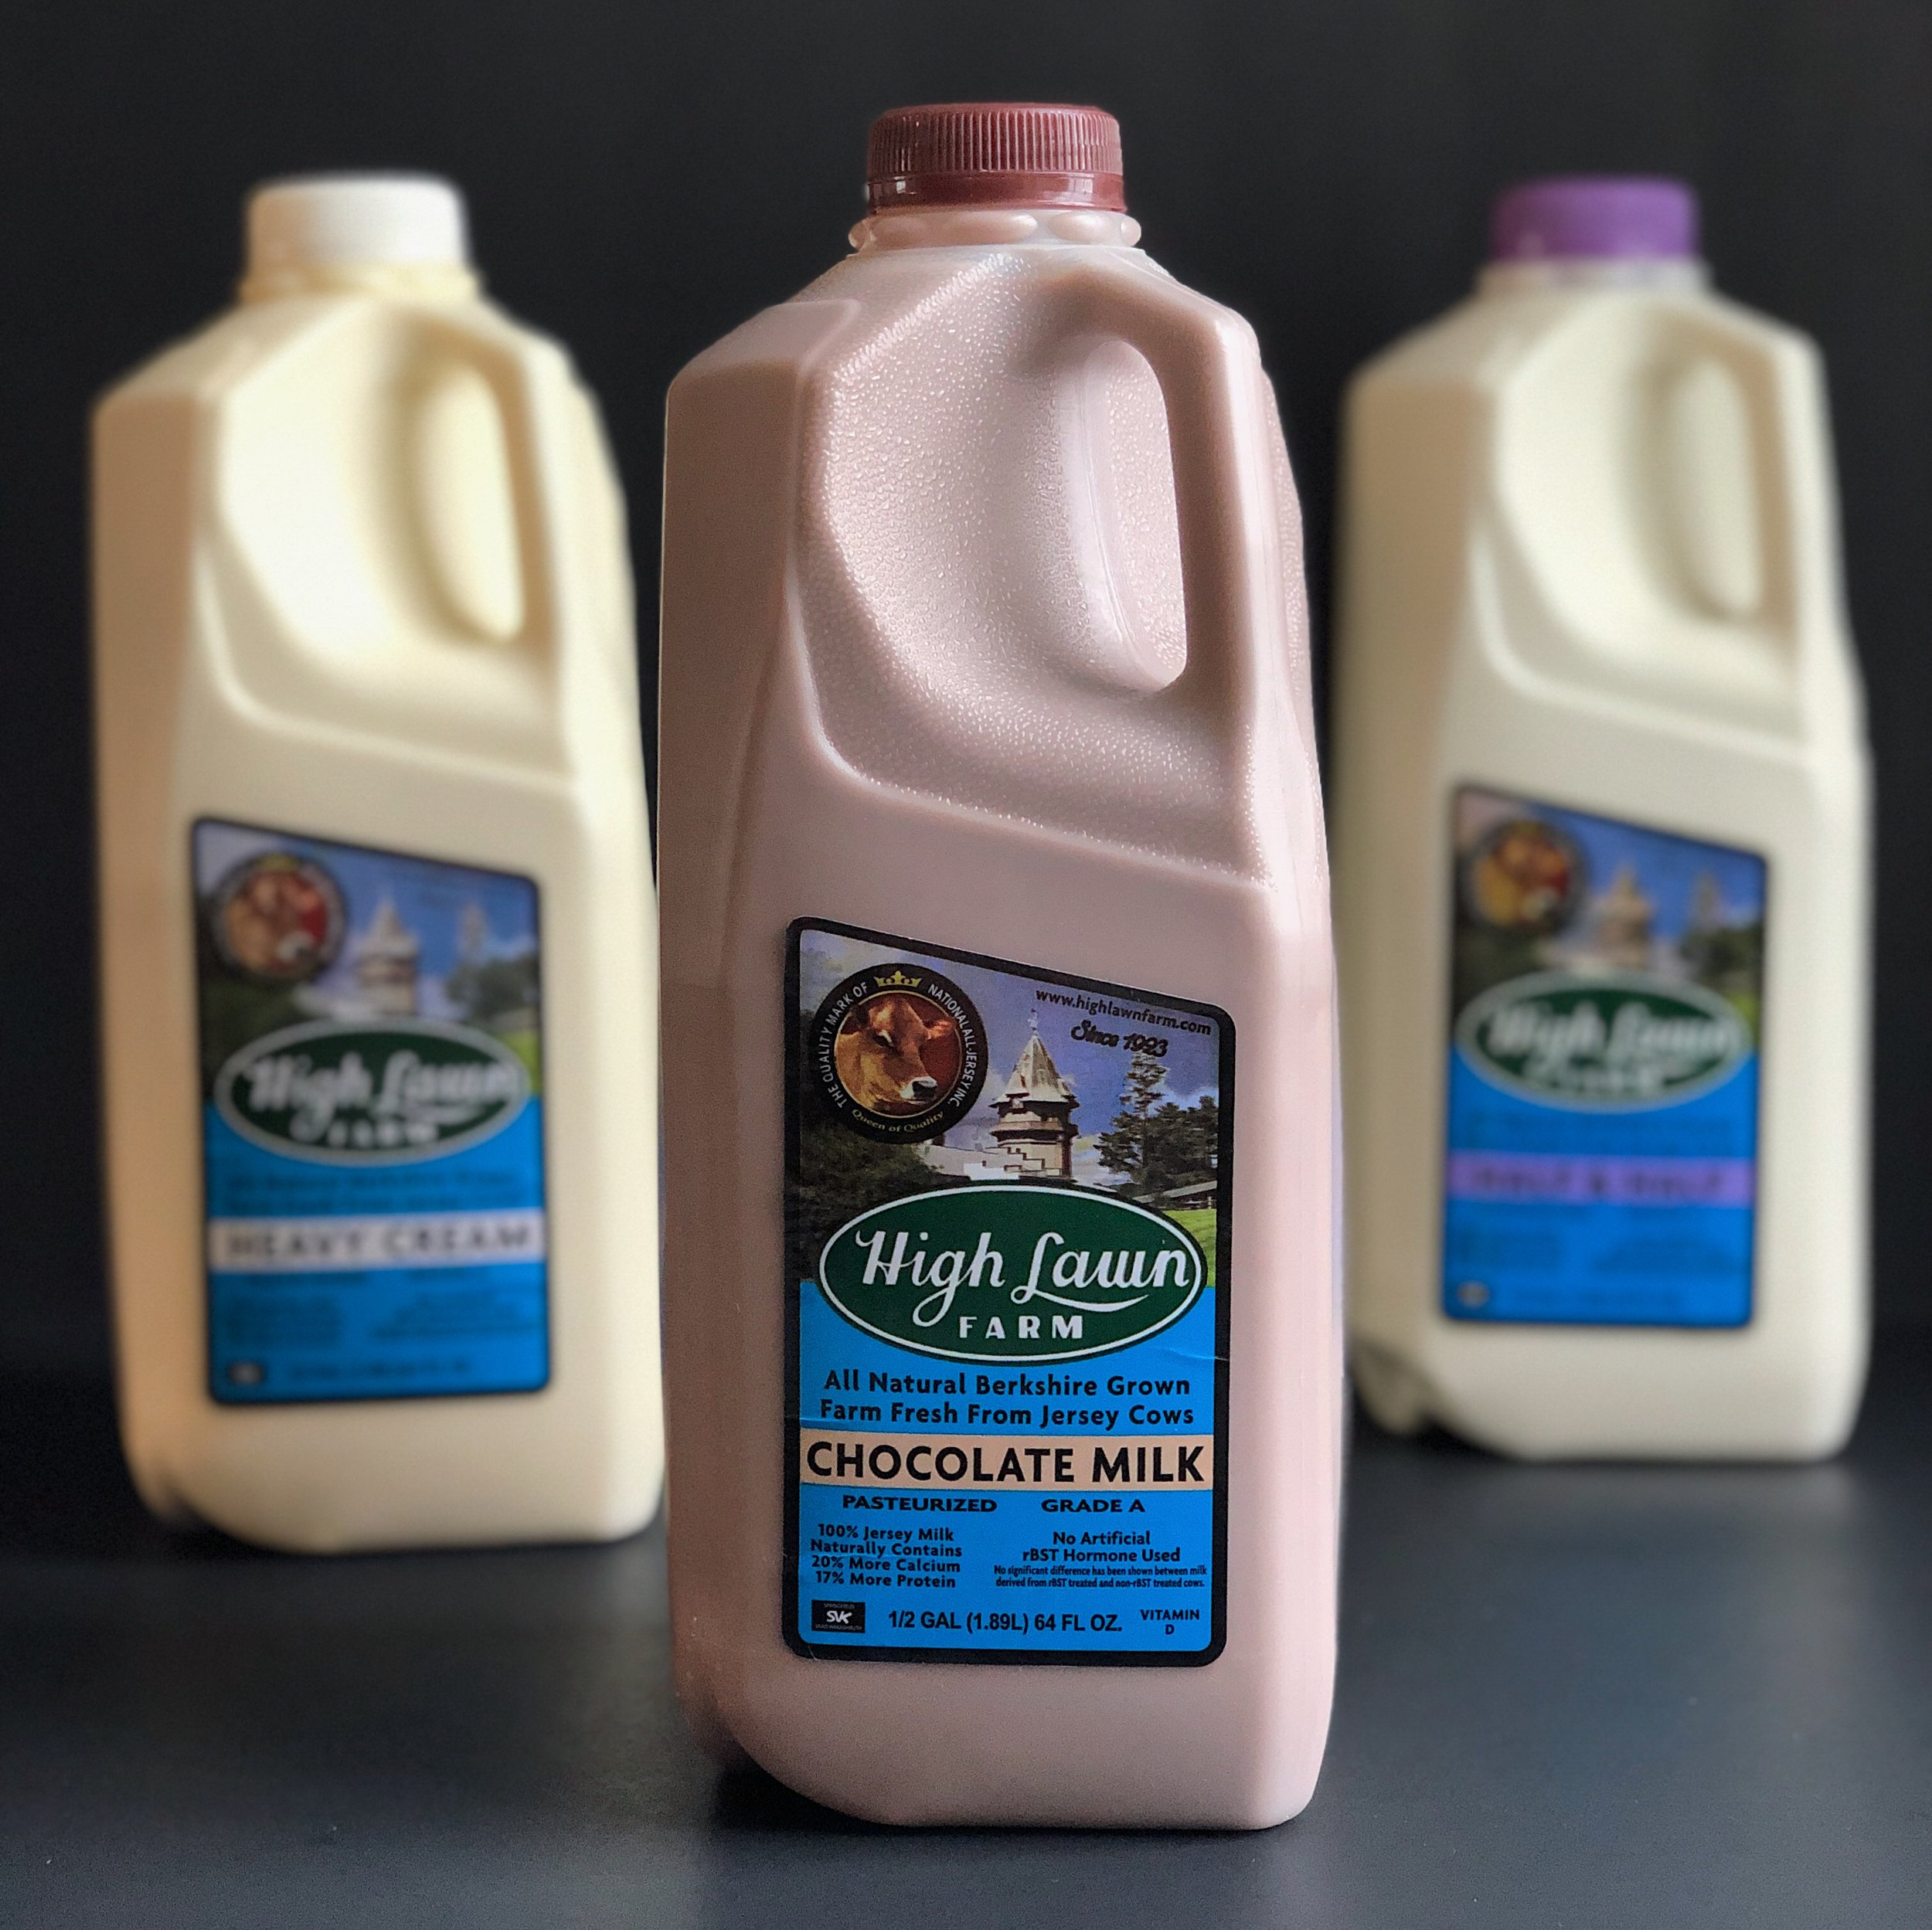 high_lawn_farm_chocolate_milk_heavy_cream_half_and_half